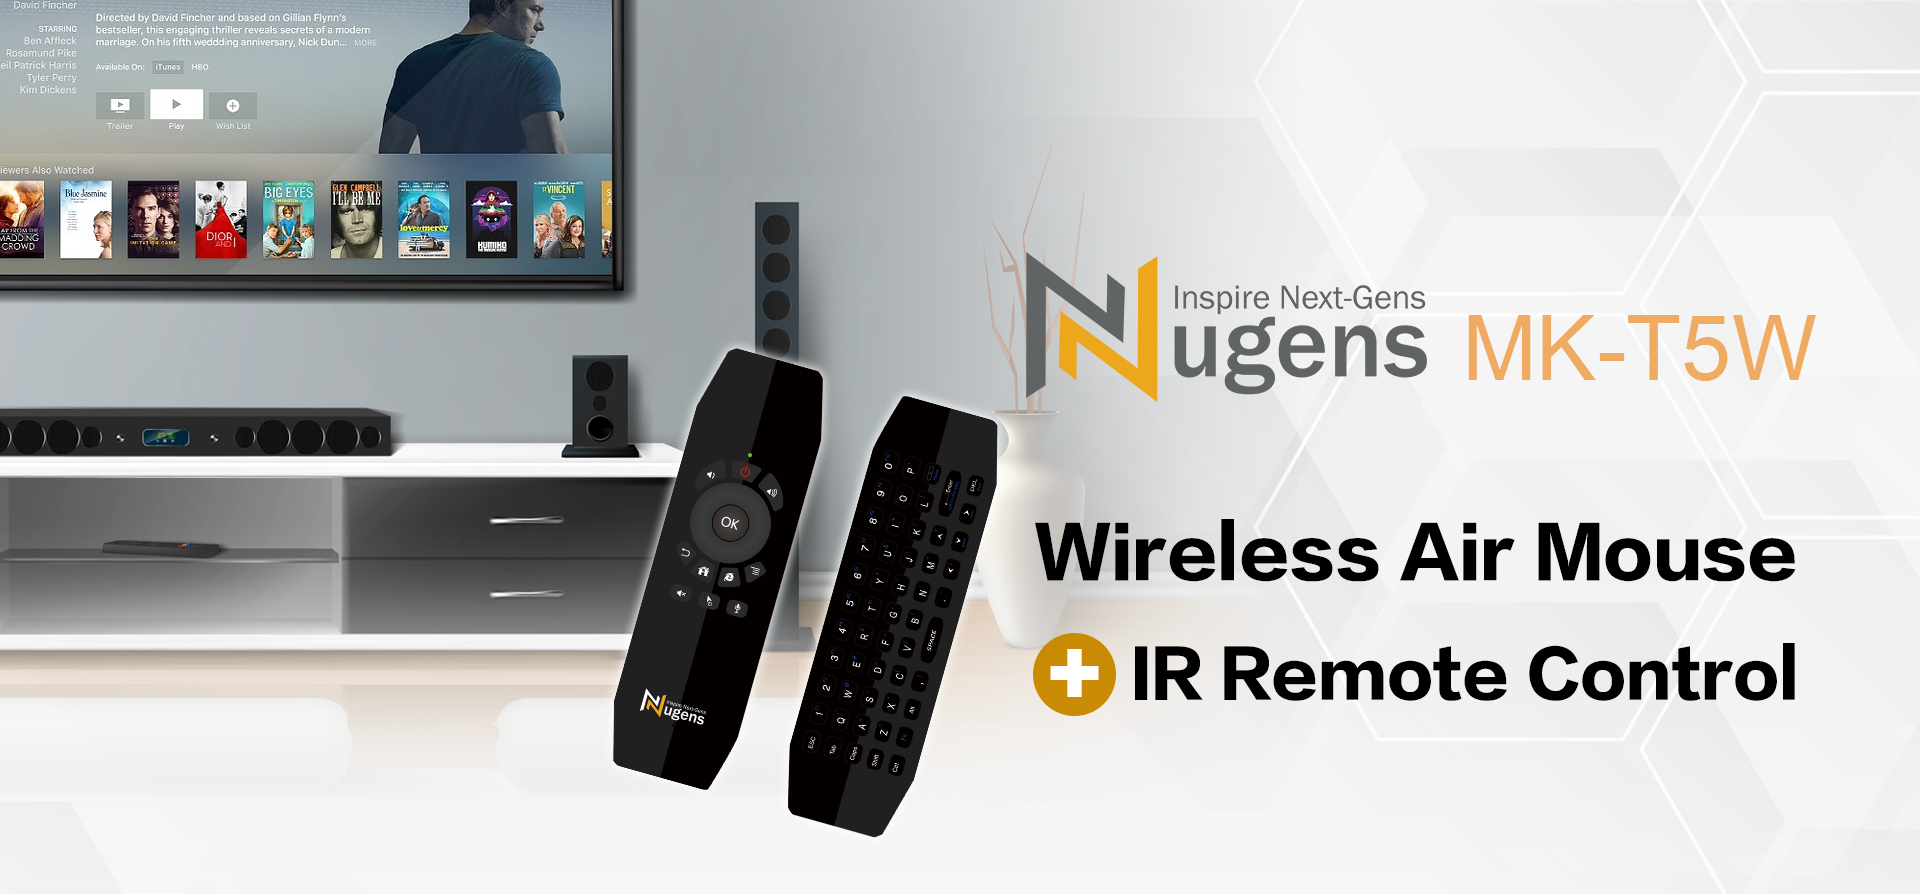 Wireless Air Mouse + IR Remote Control